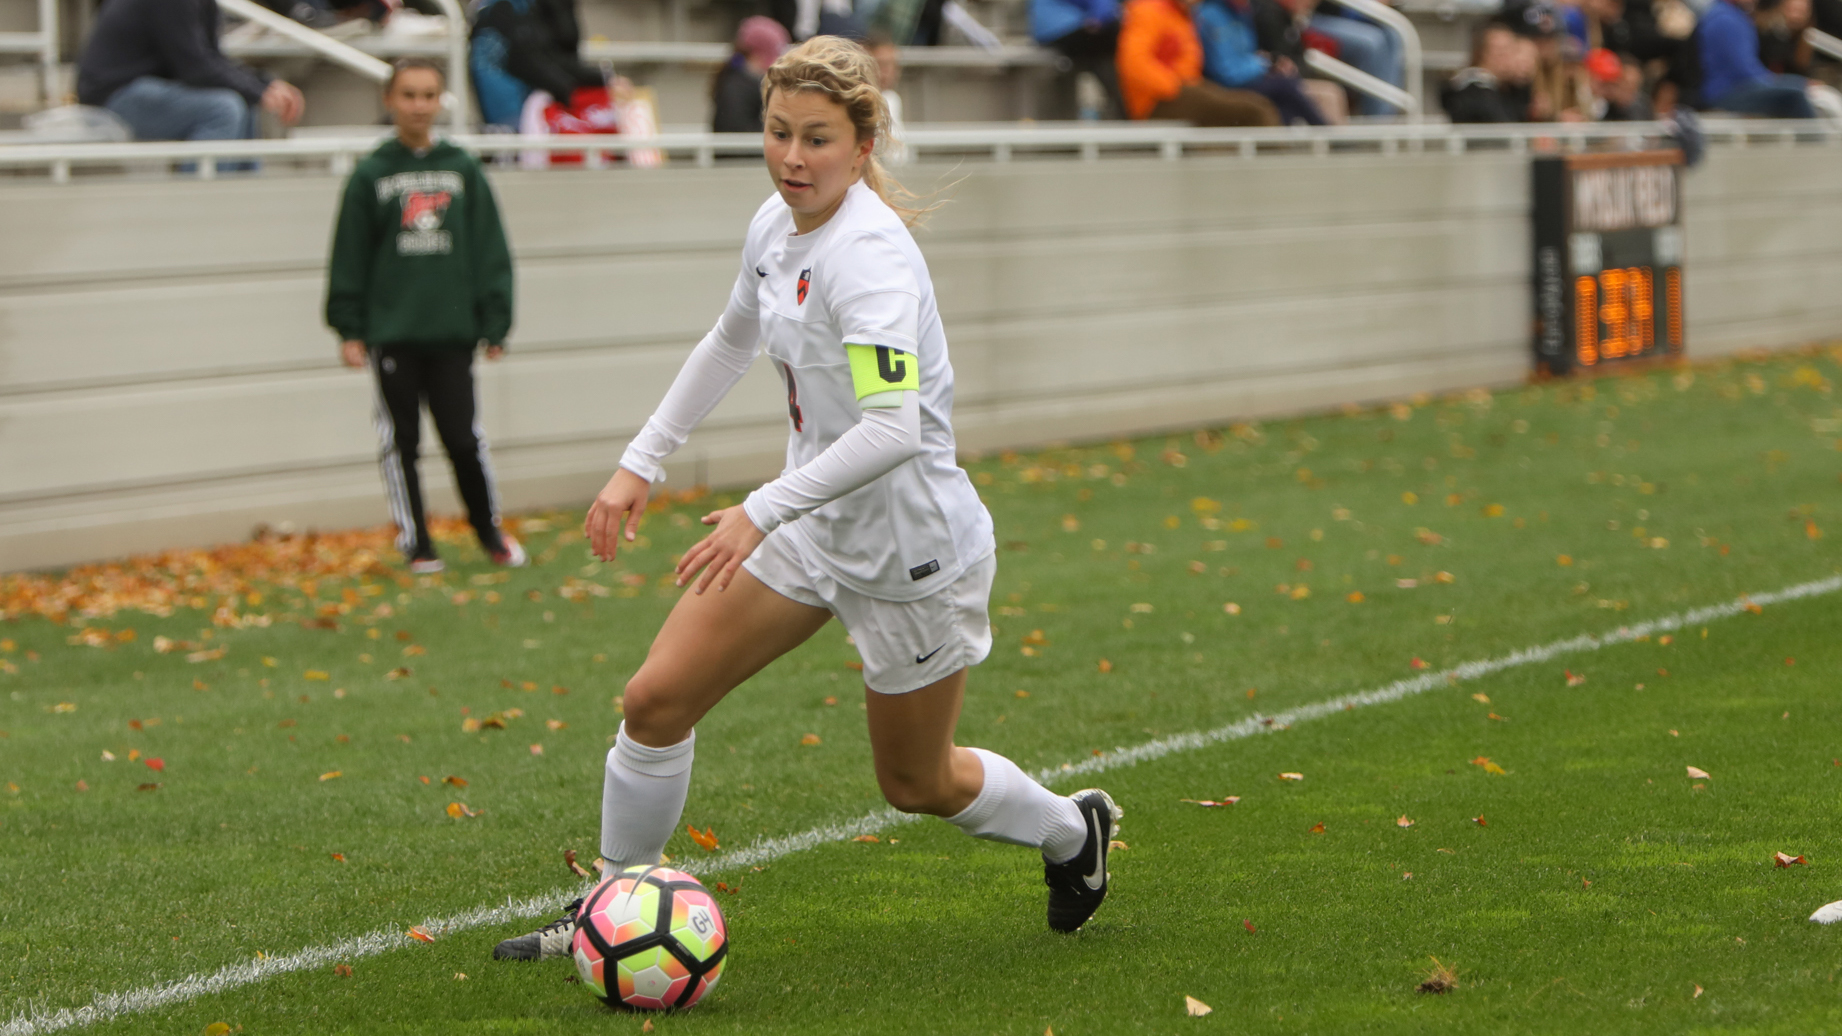 Women s Soccer Team to Host Spring Games in April - Princeton ... dfc7f559e